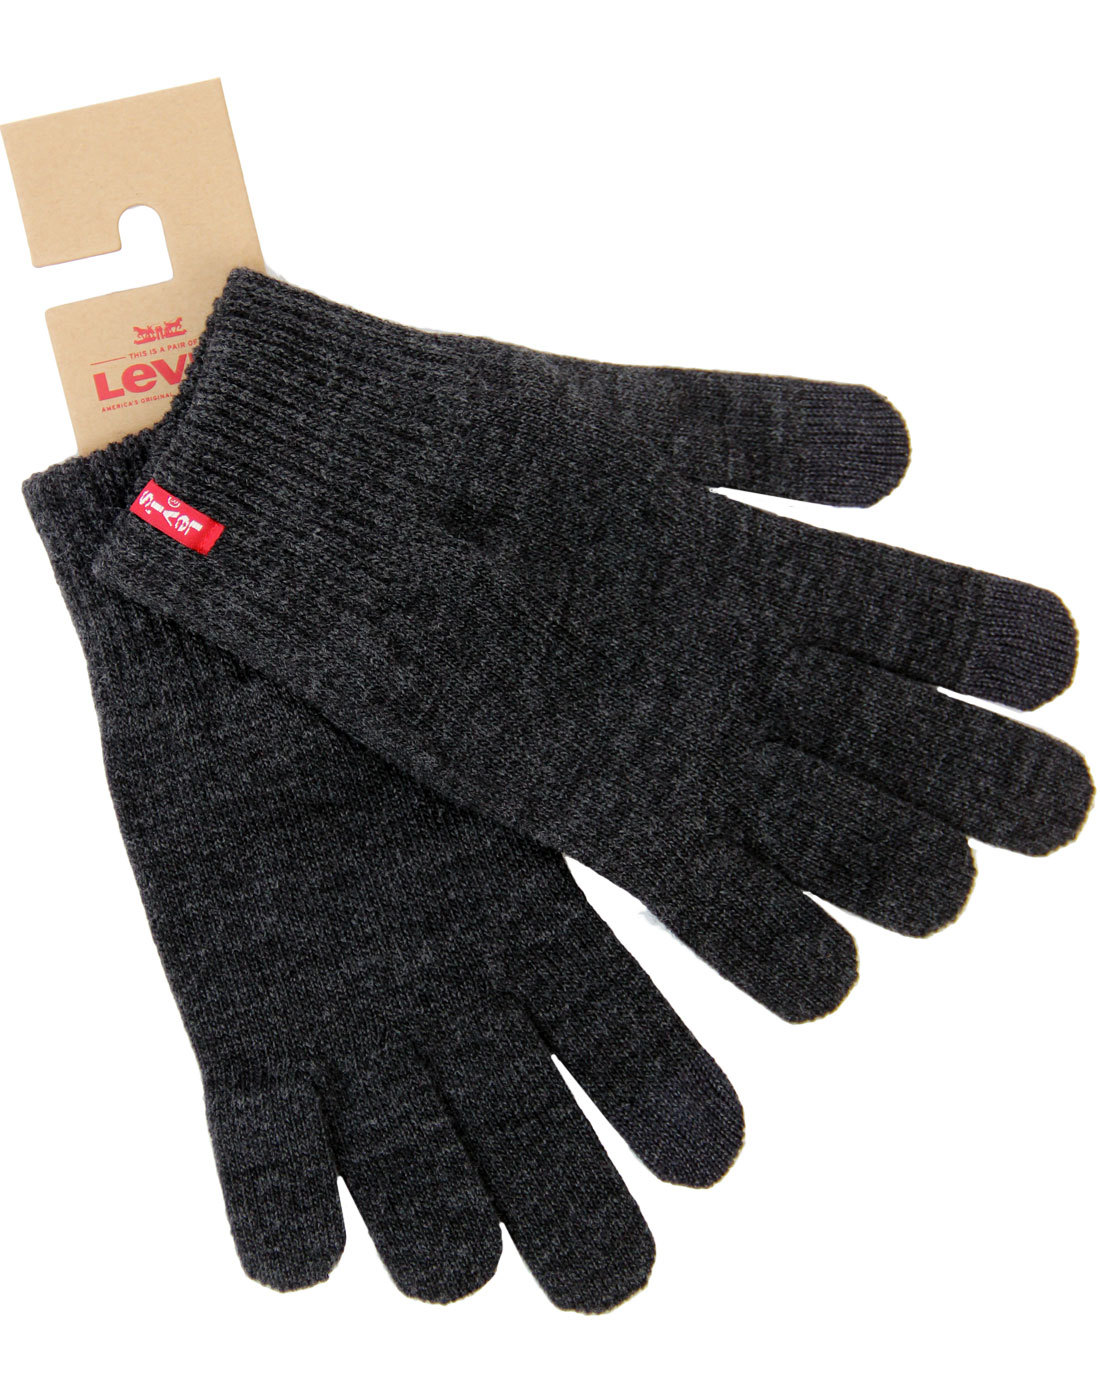 LEVI'S® Knit Touch Screen Ribbed Cuff Gloves GREY